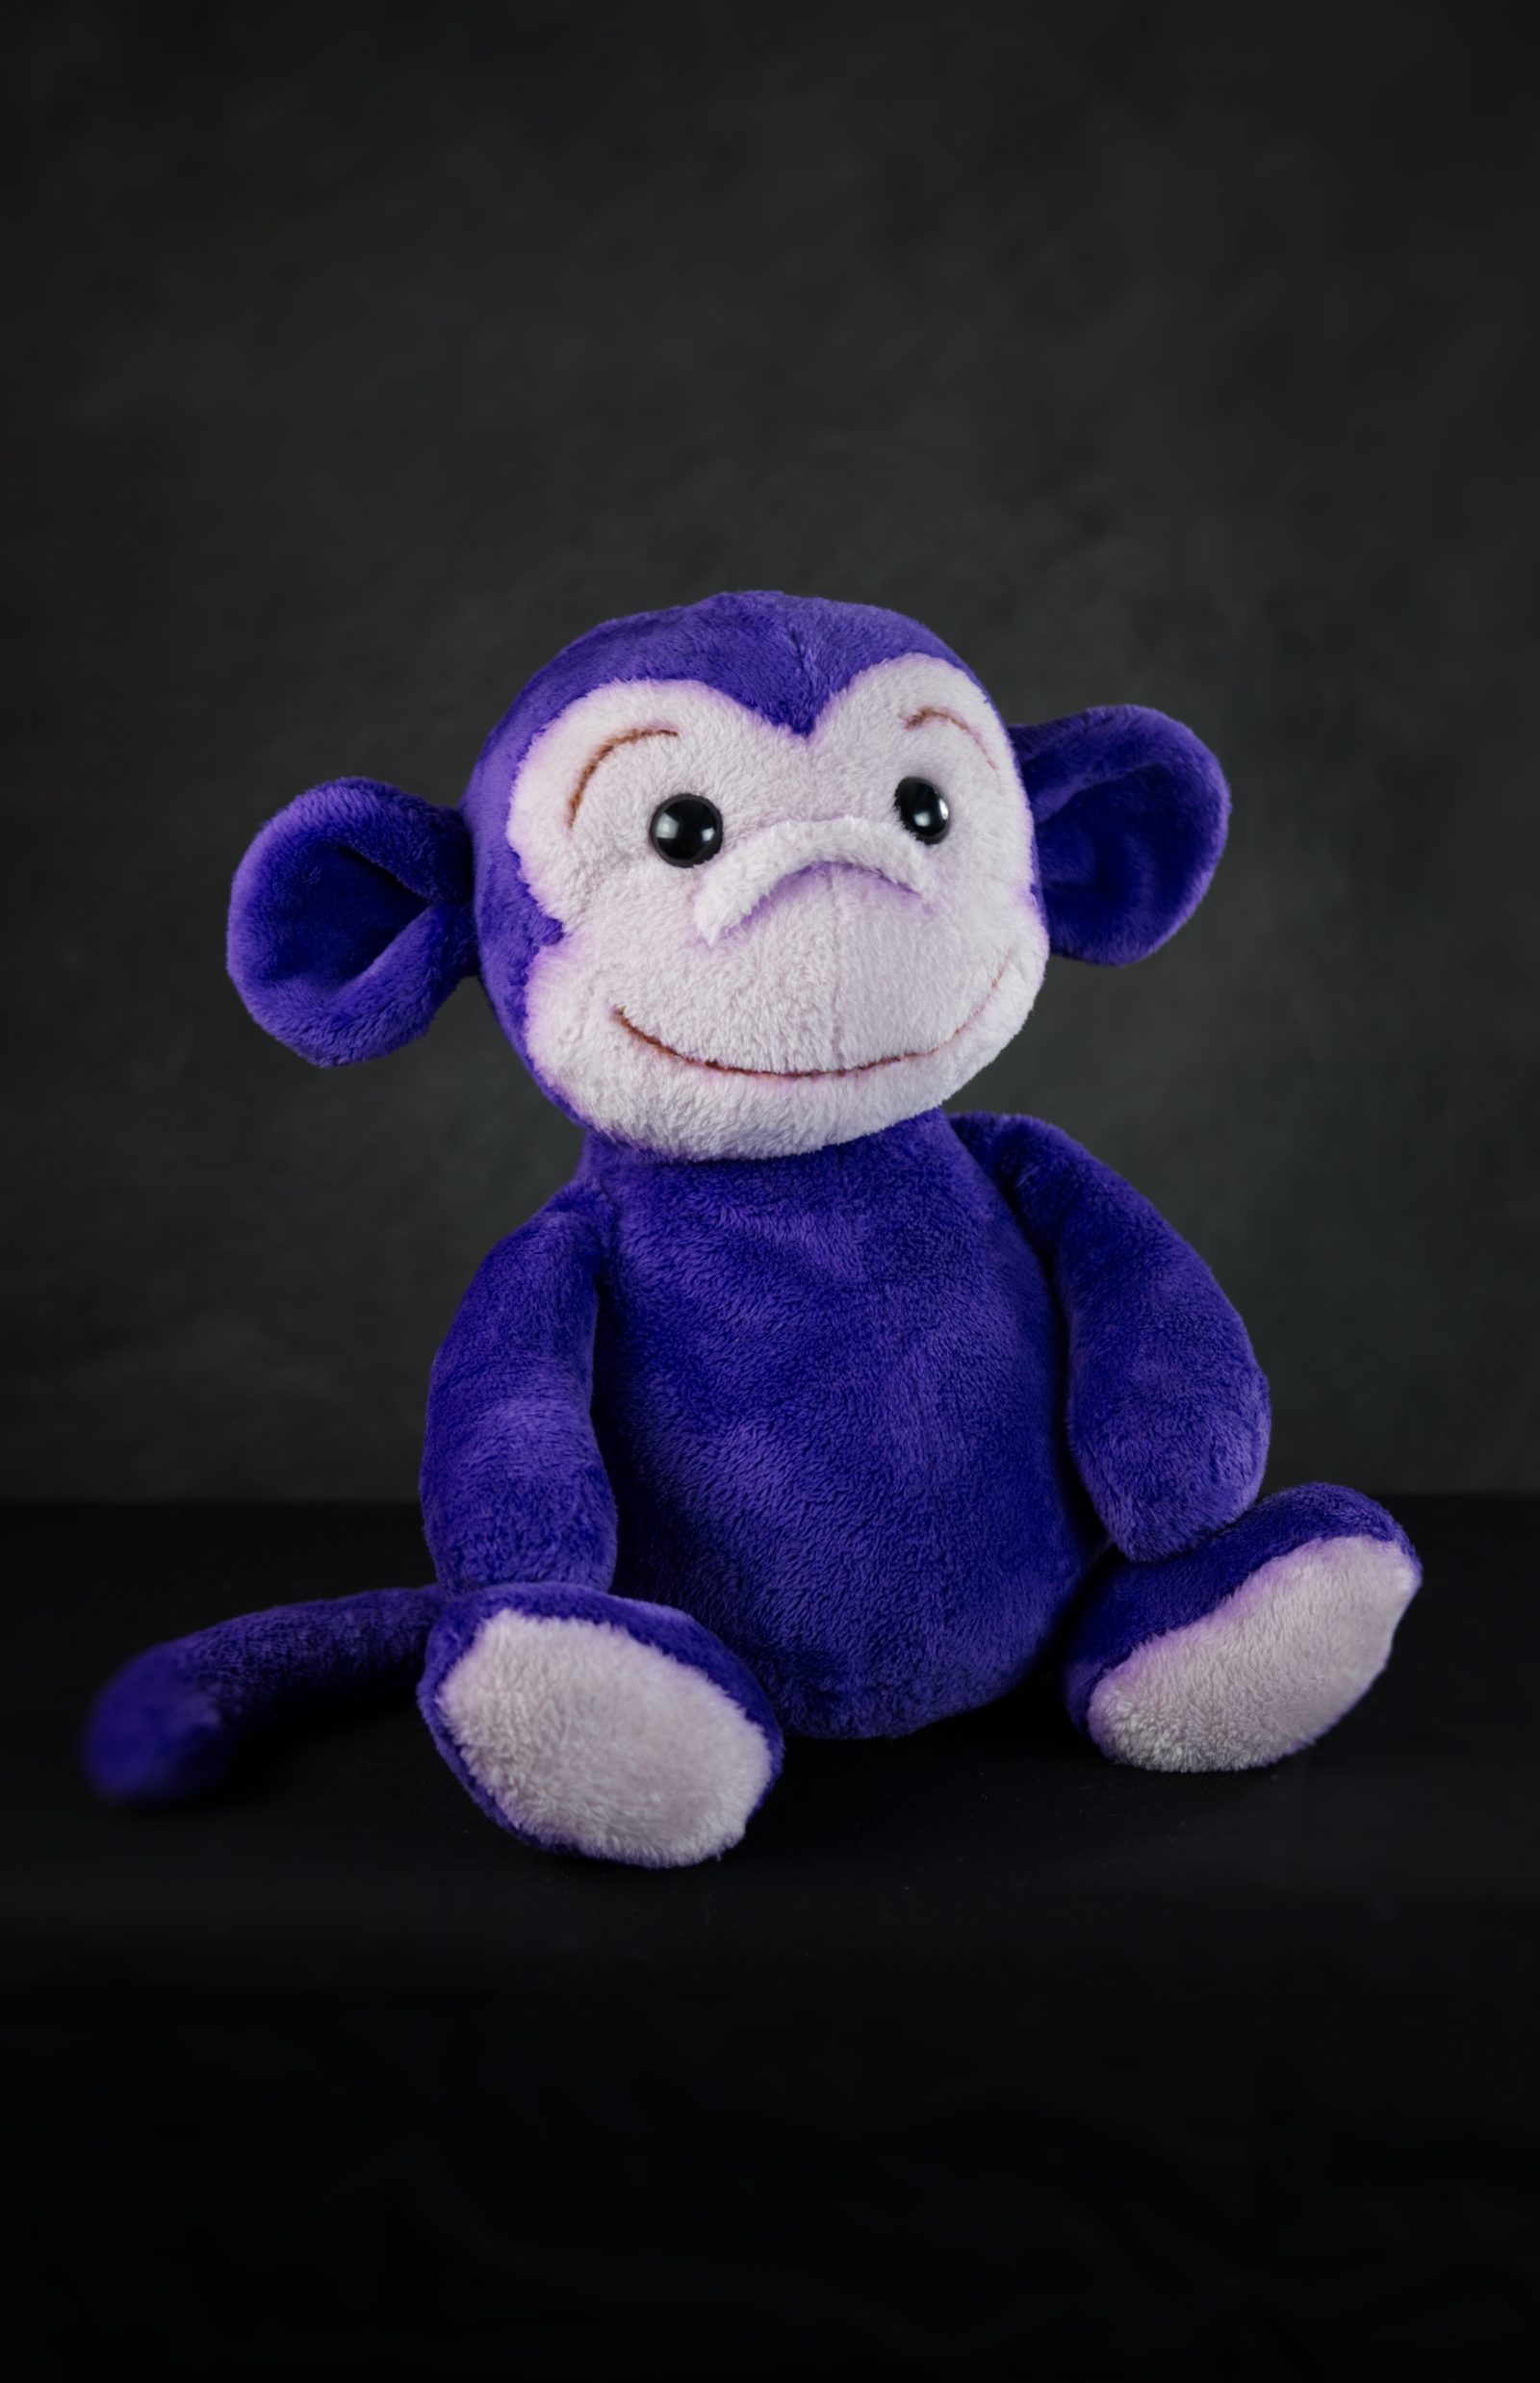 cheeky monsters monkey plush